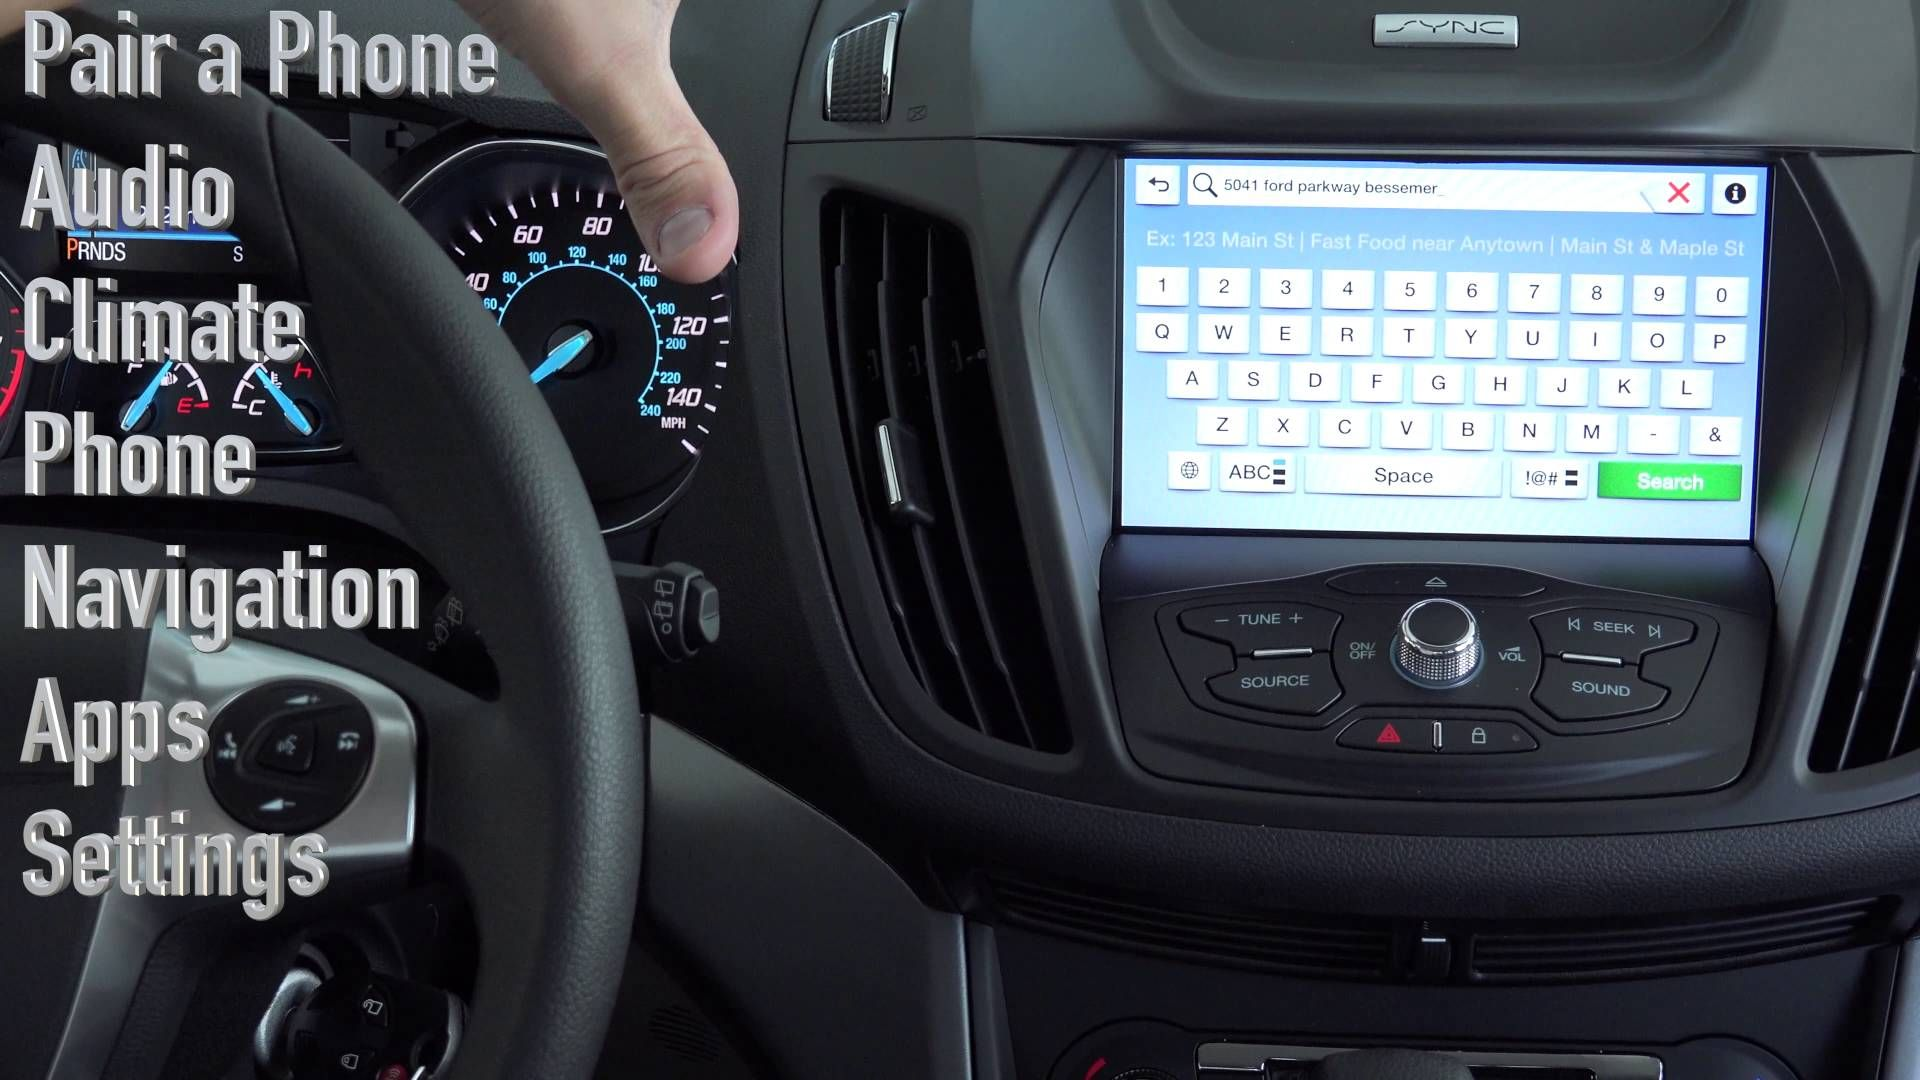 ford s sync 3 hands on full tutorial everything about ford rh pinterest com Ford Freestyle Navigation System Manual Ford Focus Navigation System